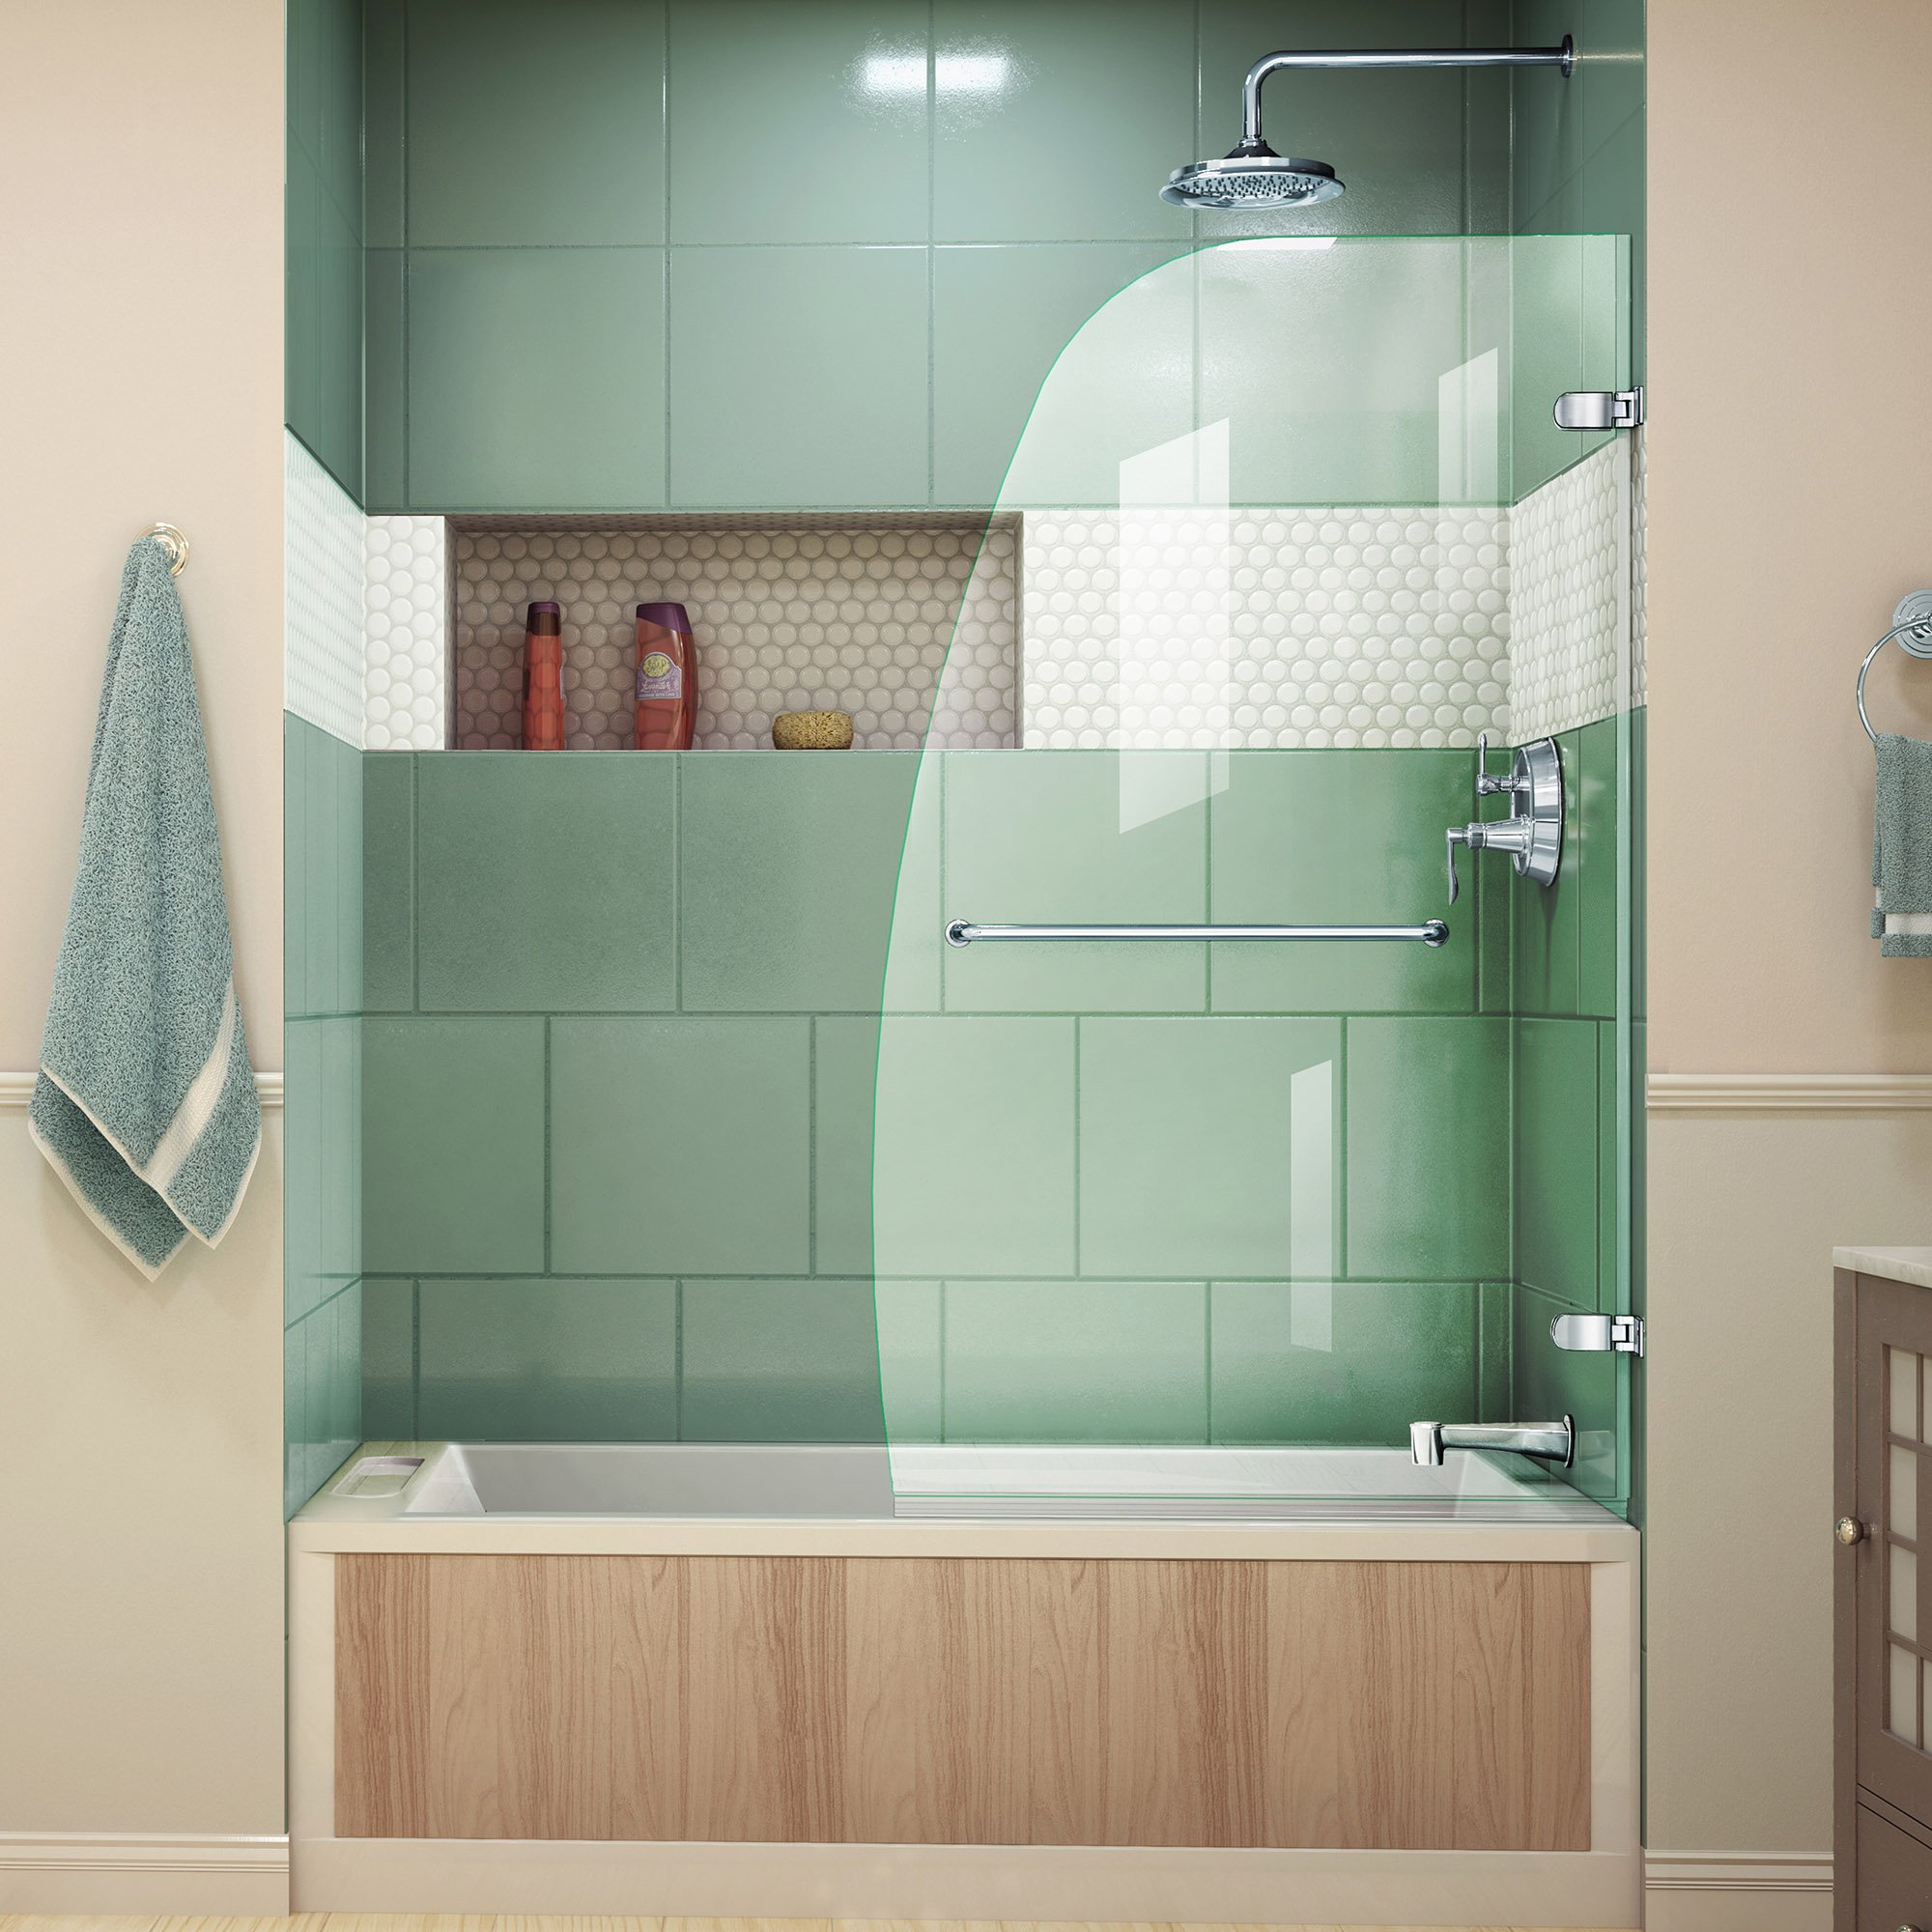 DreamLine Aqua Uno 34 in. Width, Frameless Hinged Tub Door, 1/4'' Glass, Chrome Finish by DreamLine (Image #1)